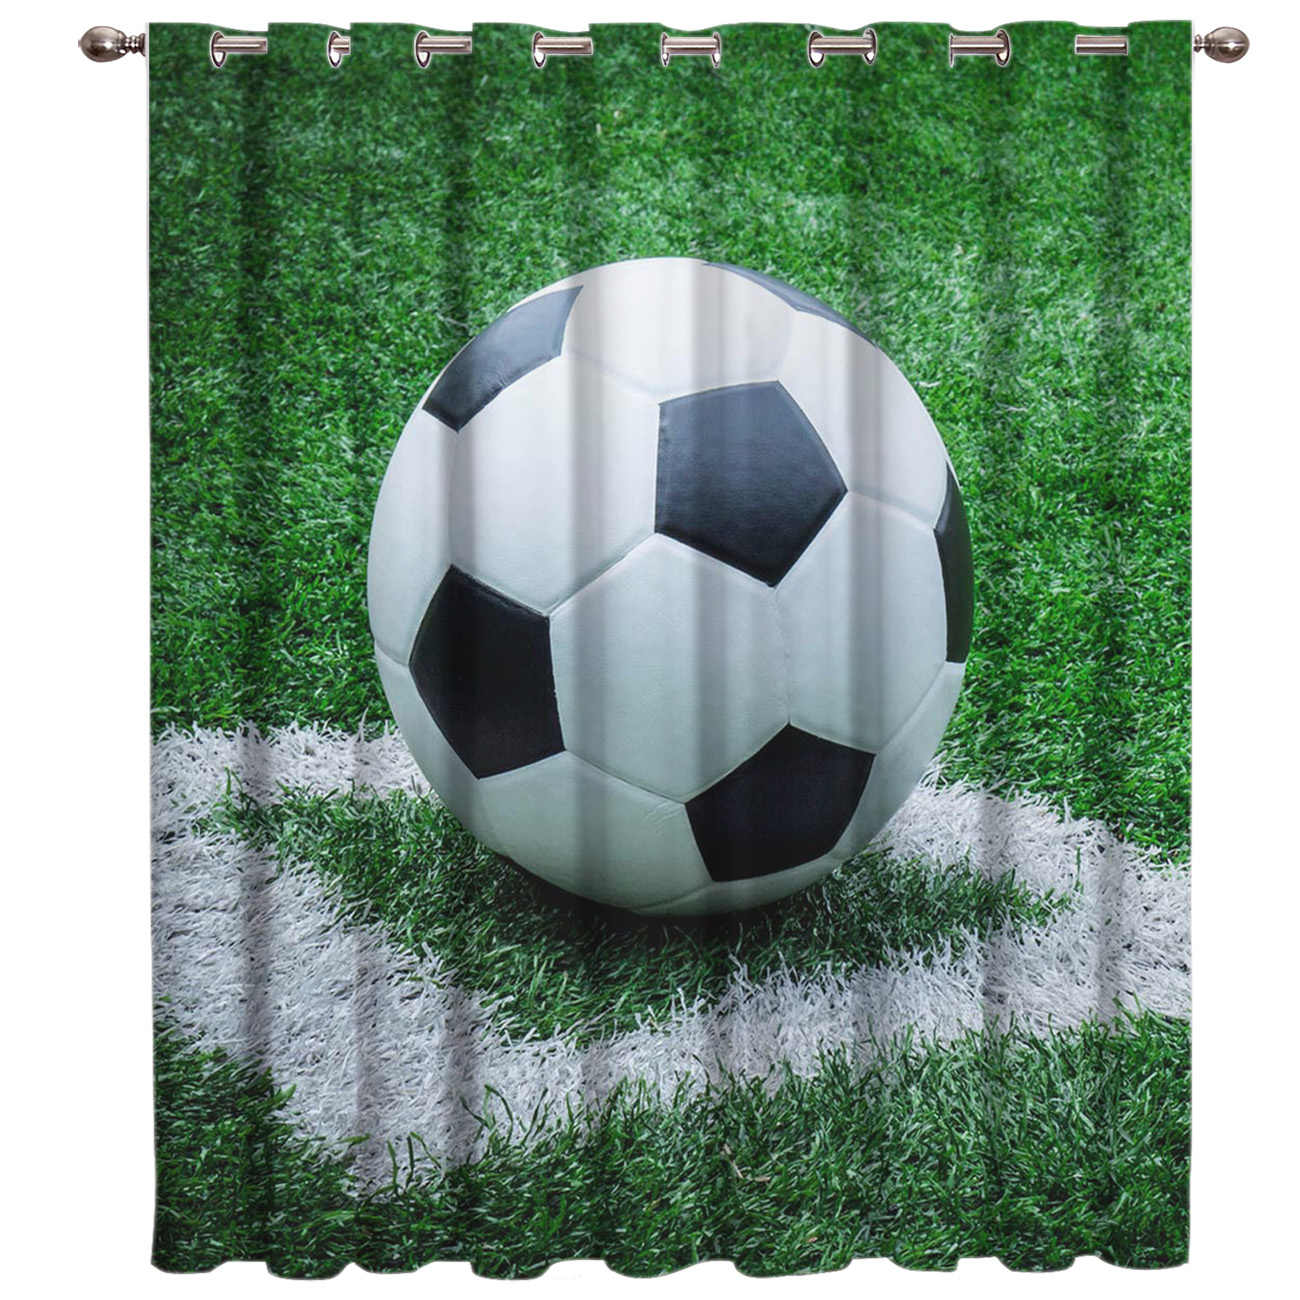 Soccer Curtains Balls Football 3D Window Curtains for Living Room Bedroom Kitchen Cortinas Para Sala De Estar Polyester